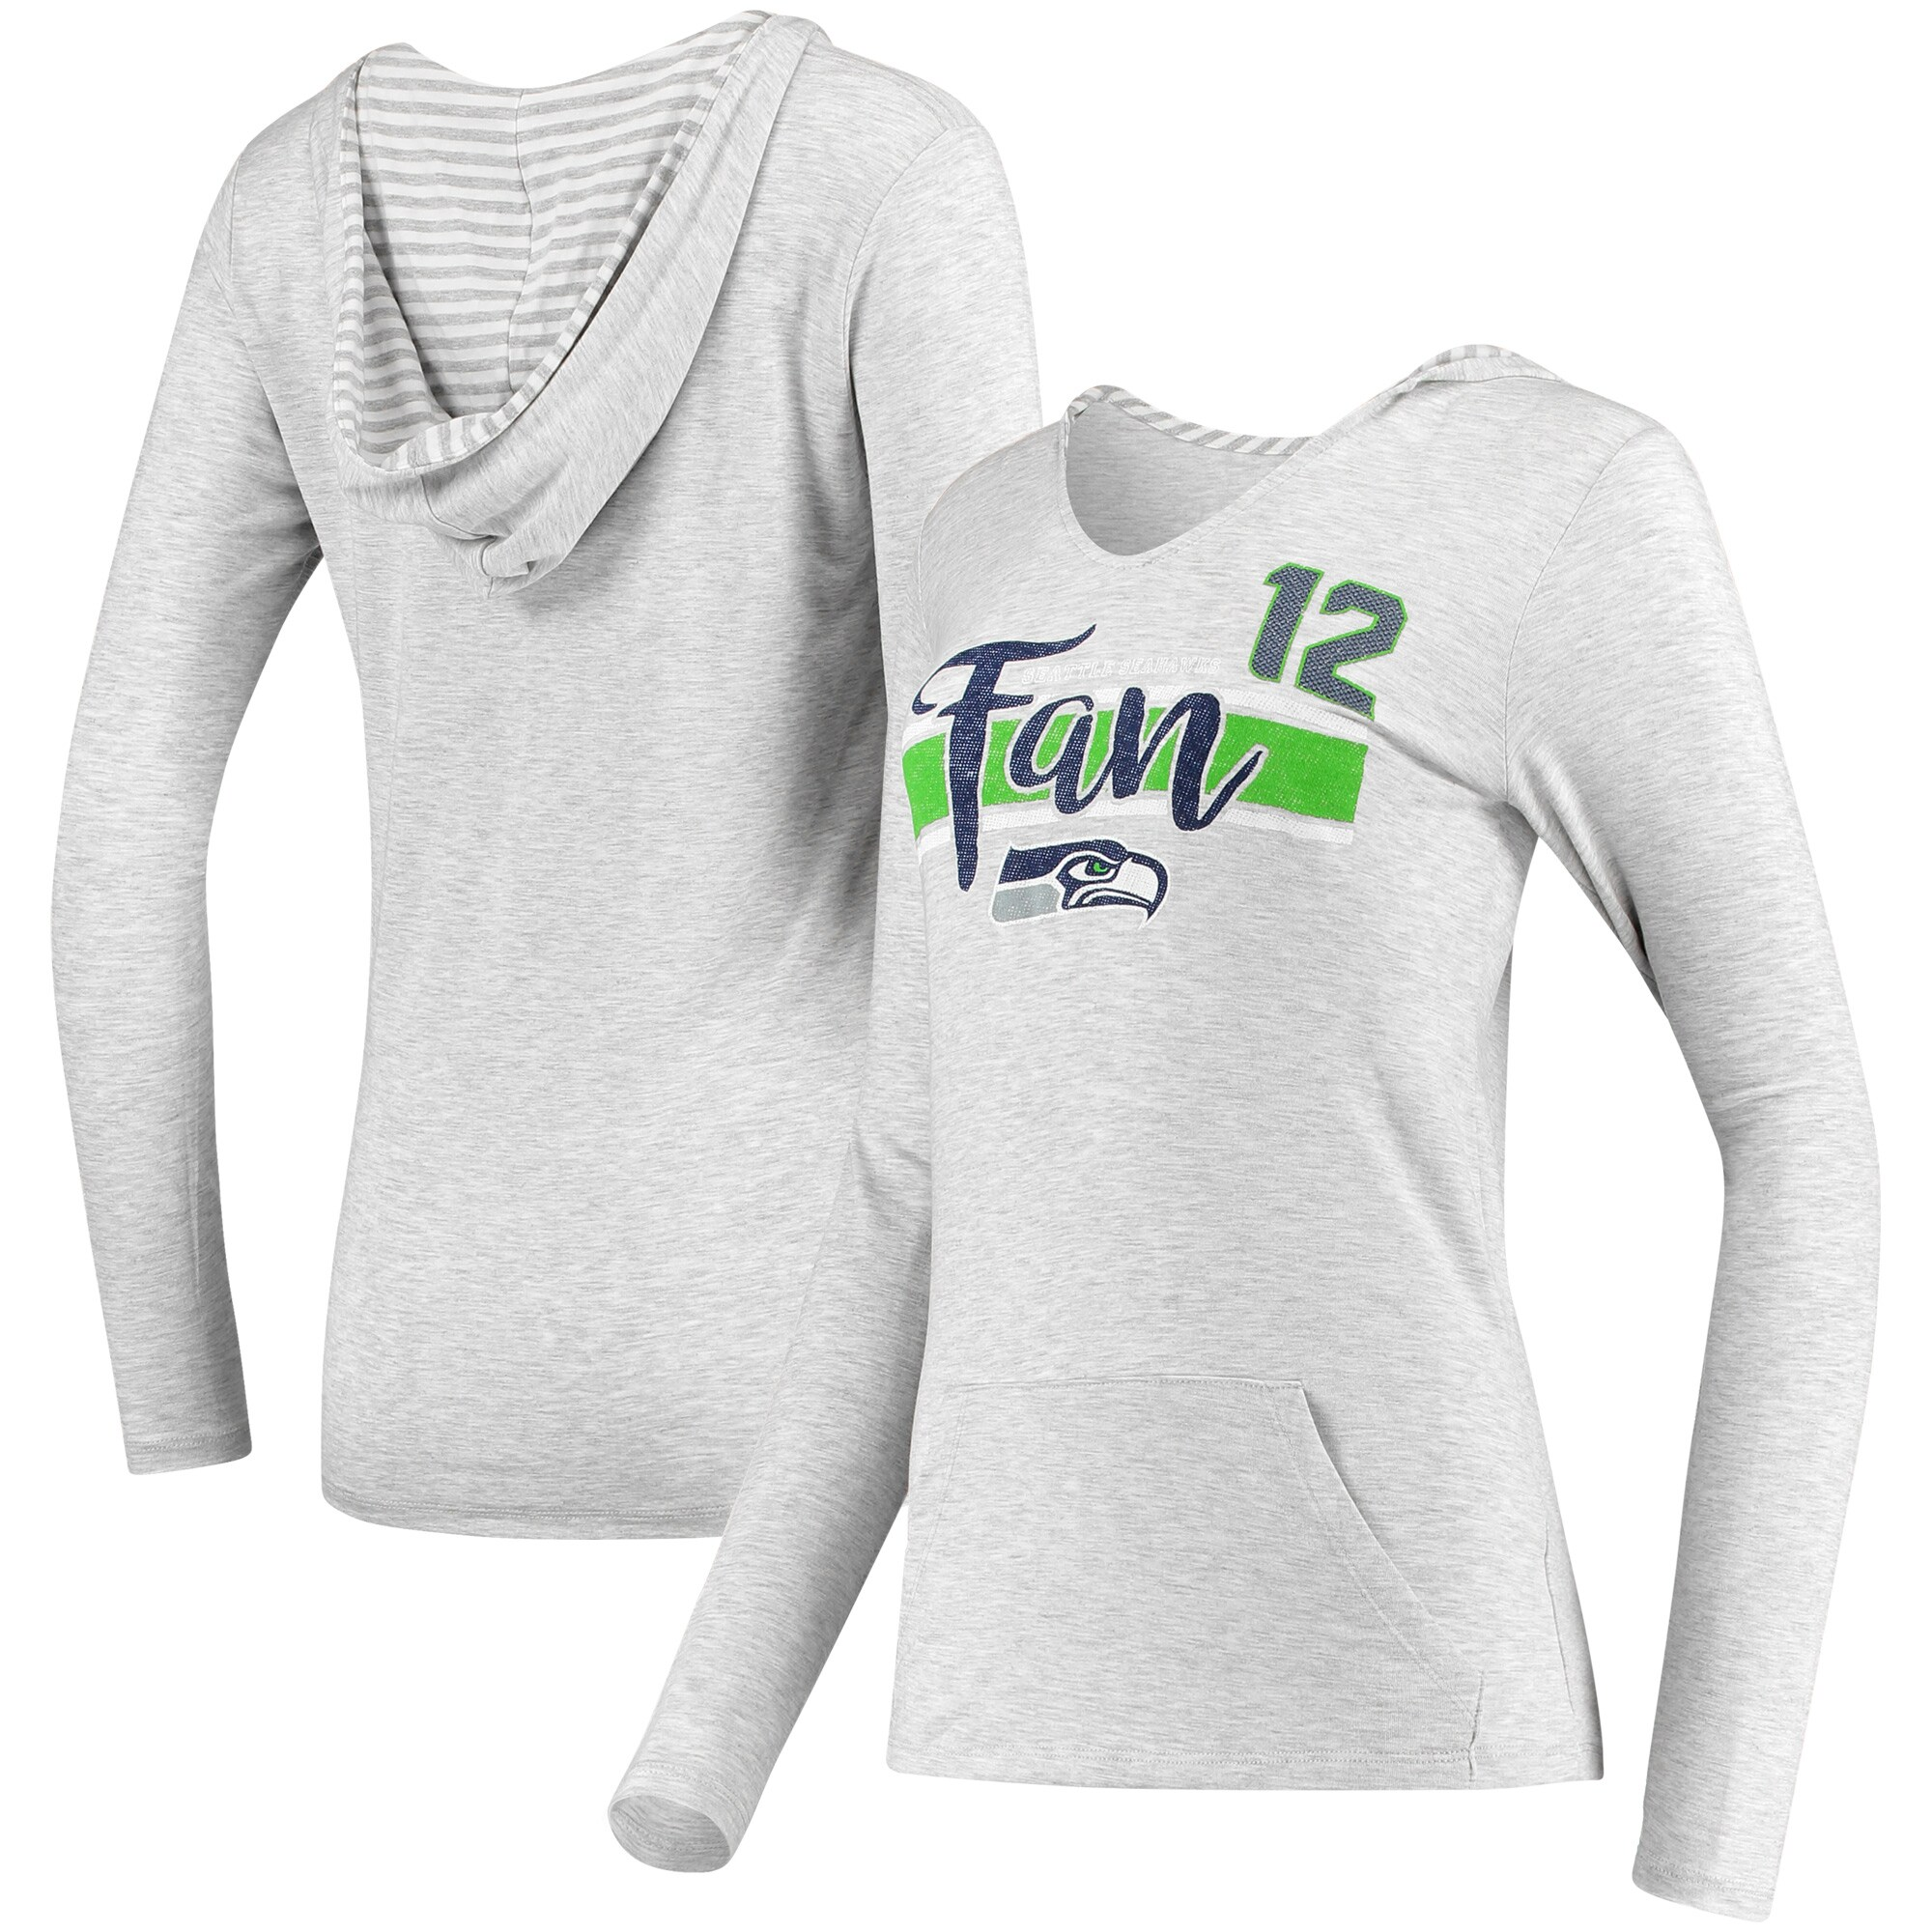 12s Women's Seattle Seahawks Pocket Name & Number Hoodie T-Shirt - Gray